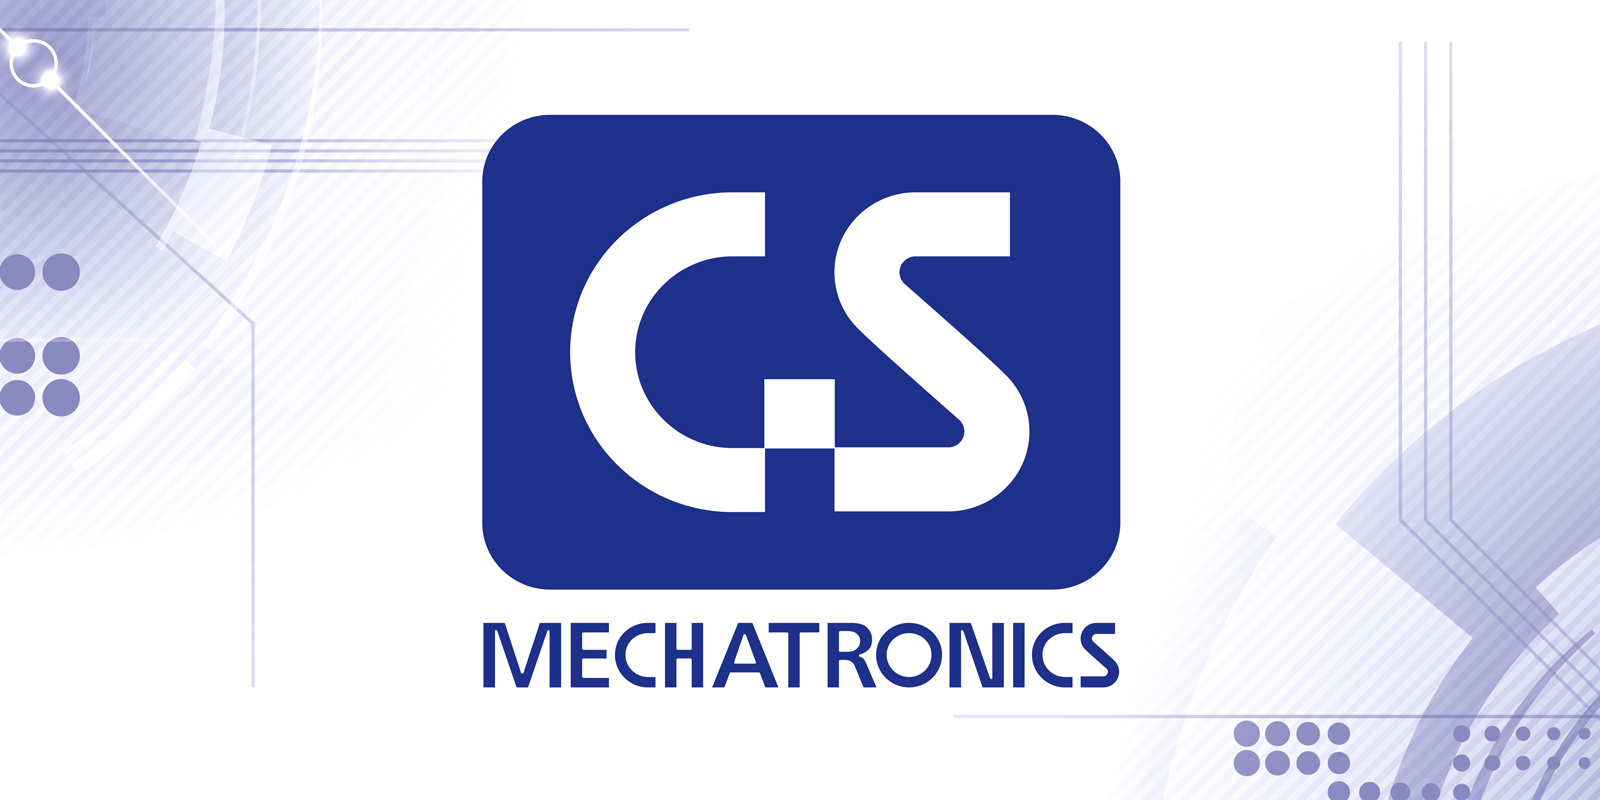 КС-МЕХАТРОНИКС;;;;;;Разработка логотипа ТМ CS Mechatronics;;;;;;<span>Клиент:</span> КС-МЕХАТРОНИКС;;;;;;;;;;;;Разработка логотипа ТМ CS Mechatronics;;;;;; 1 ;;;;;;